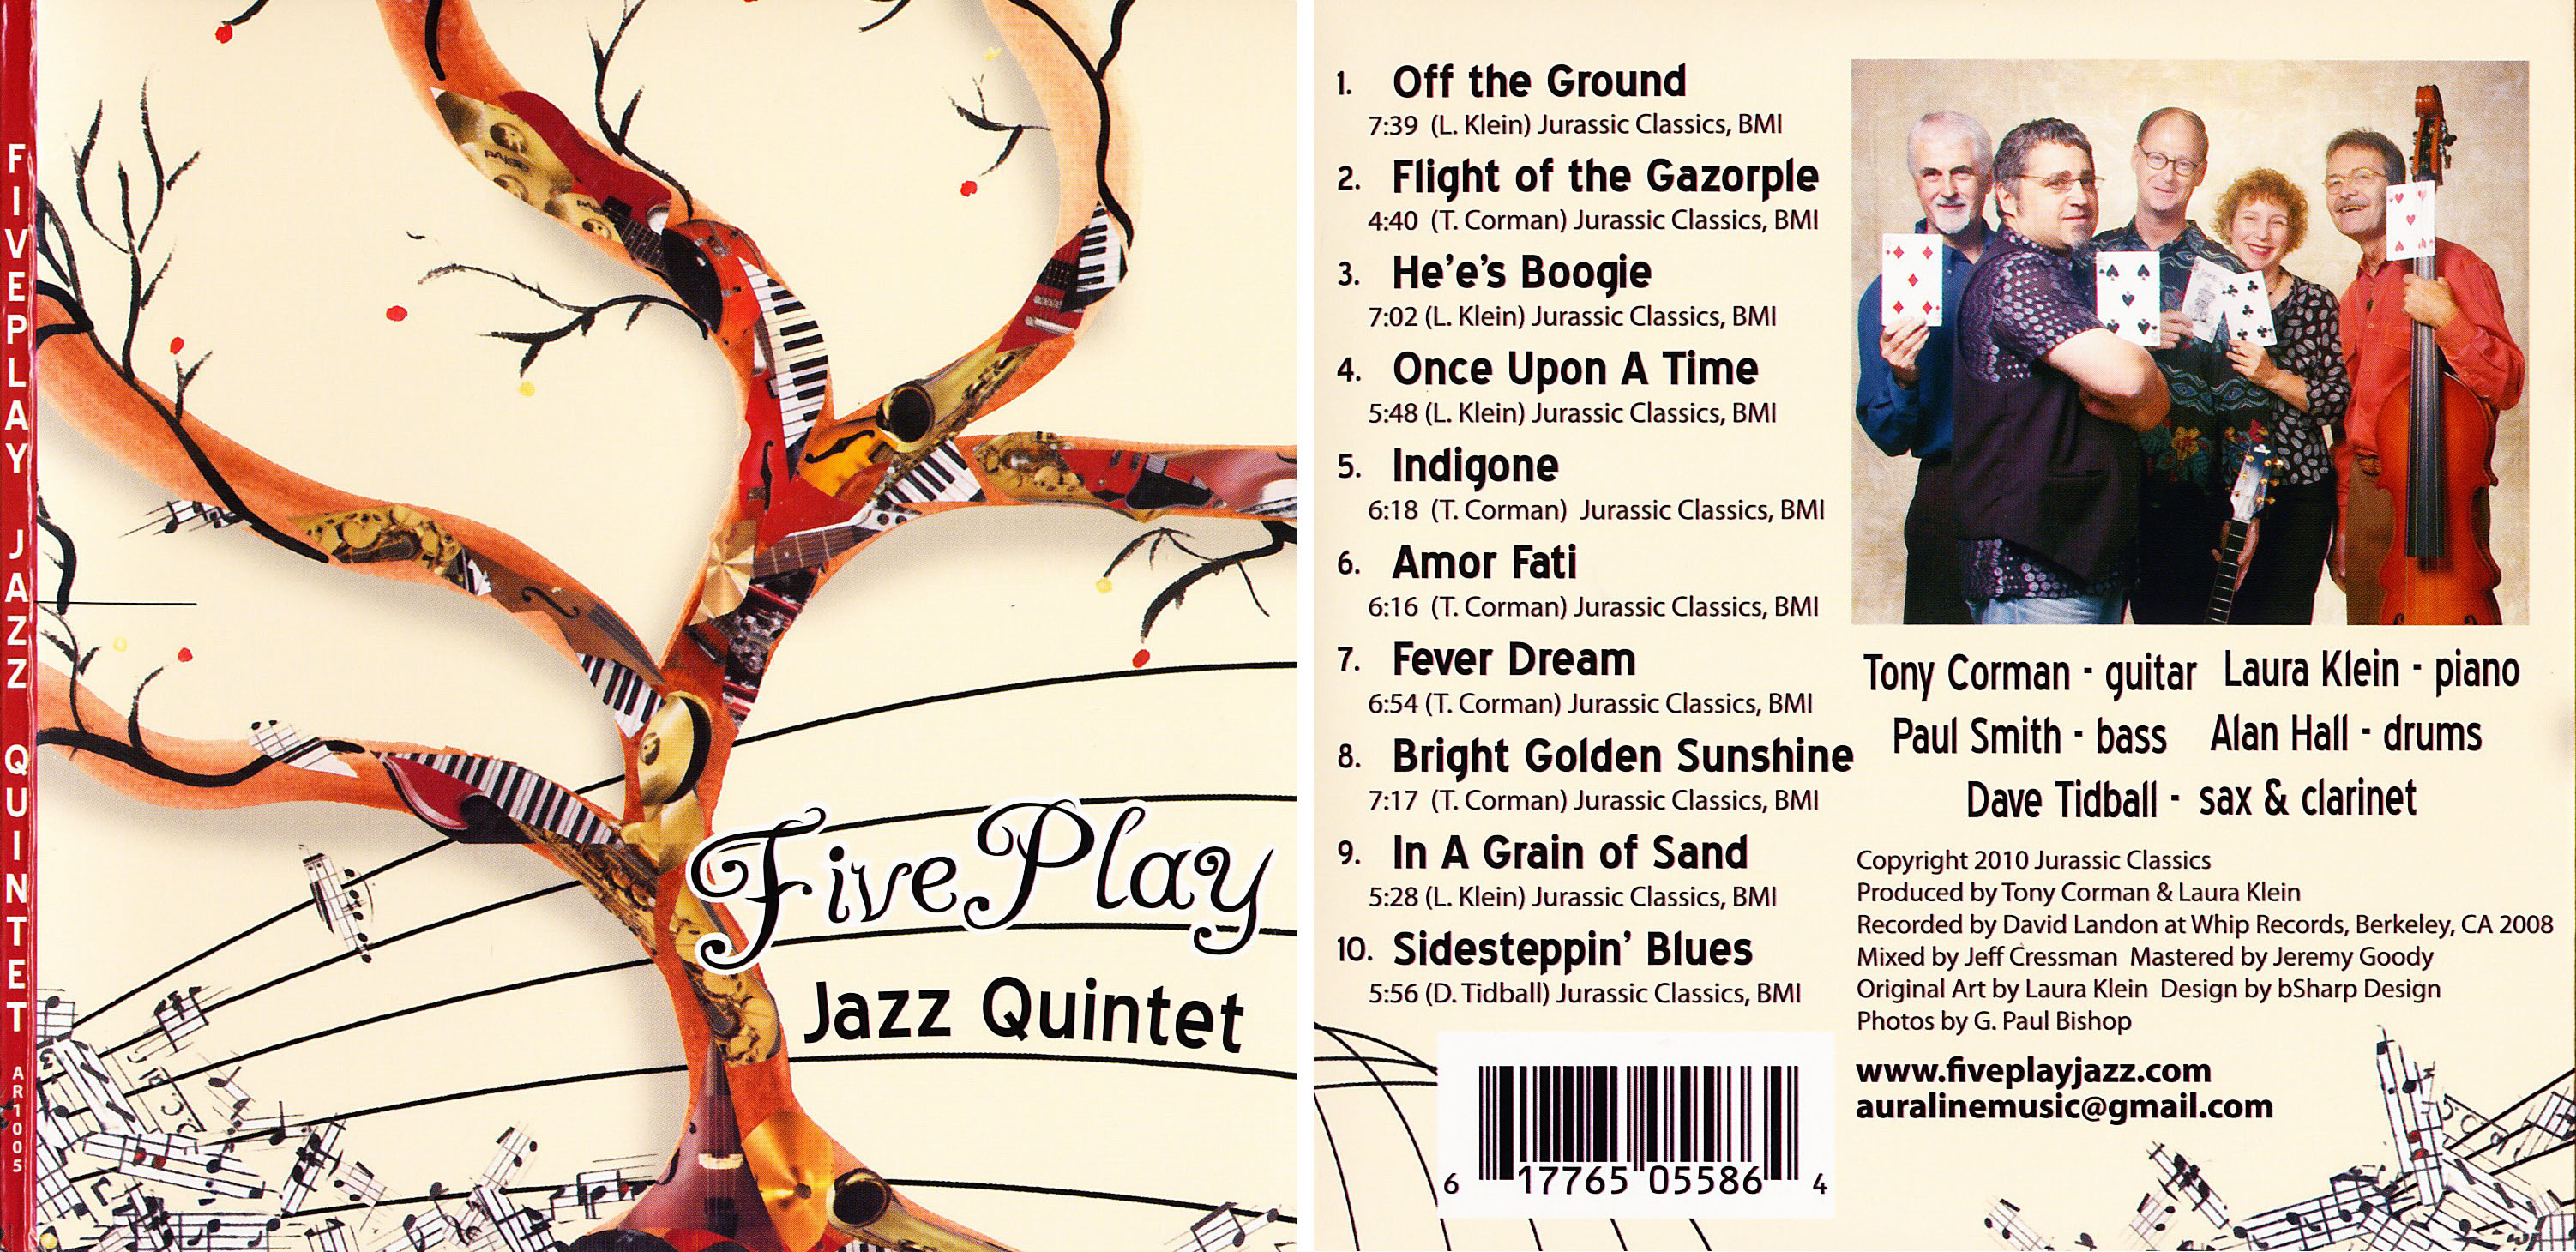 Five Play Jazz Quintet